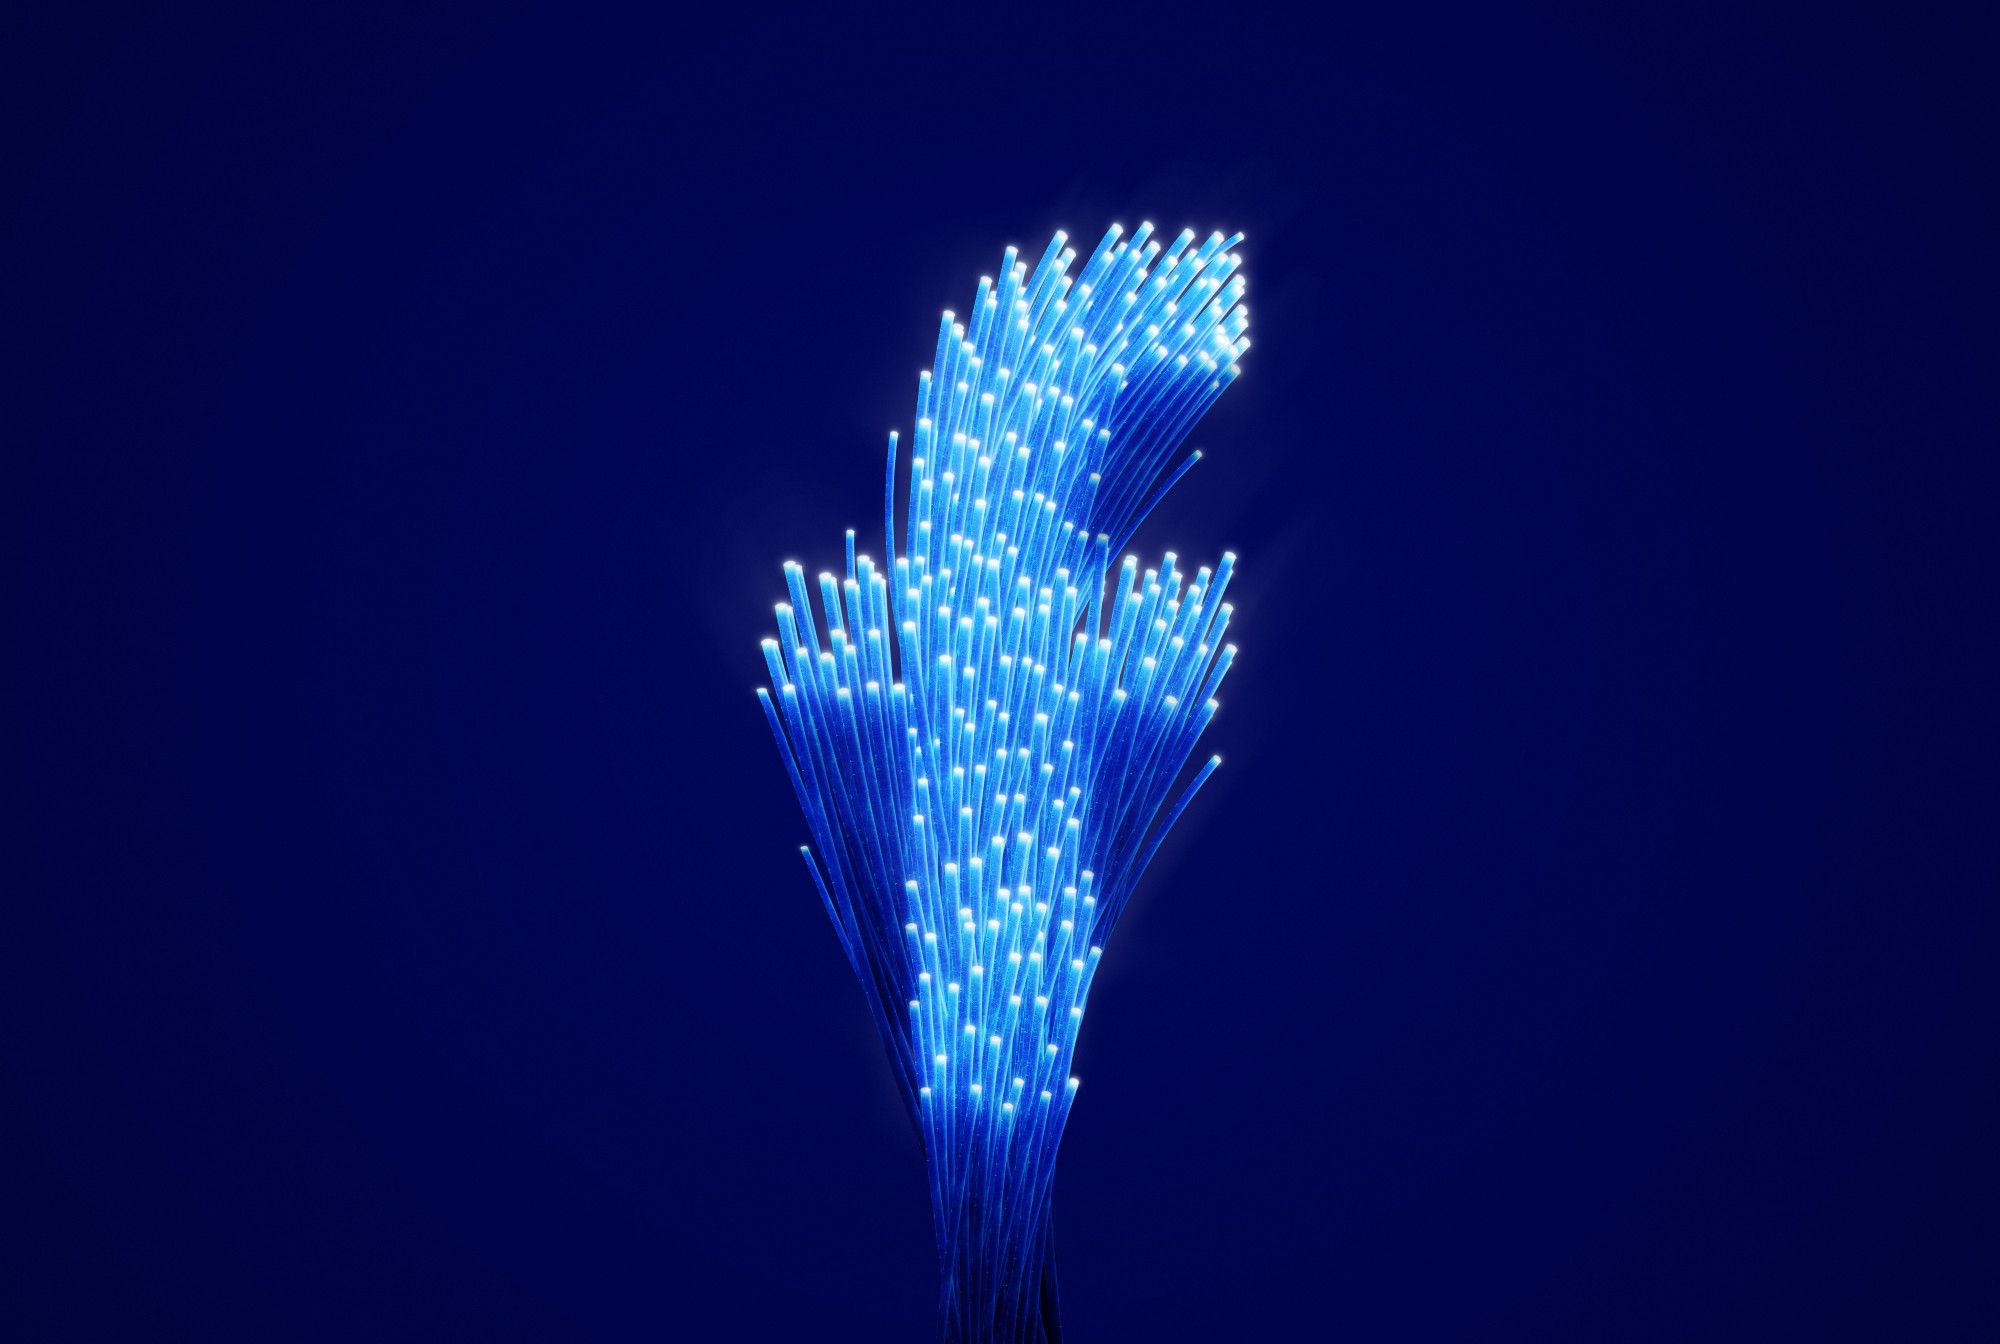 Large letter, f, made up of numerous fuzzy blue lights, on a dark blue background.